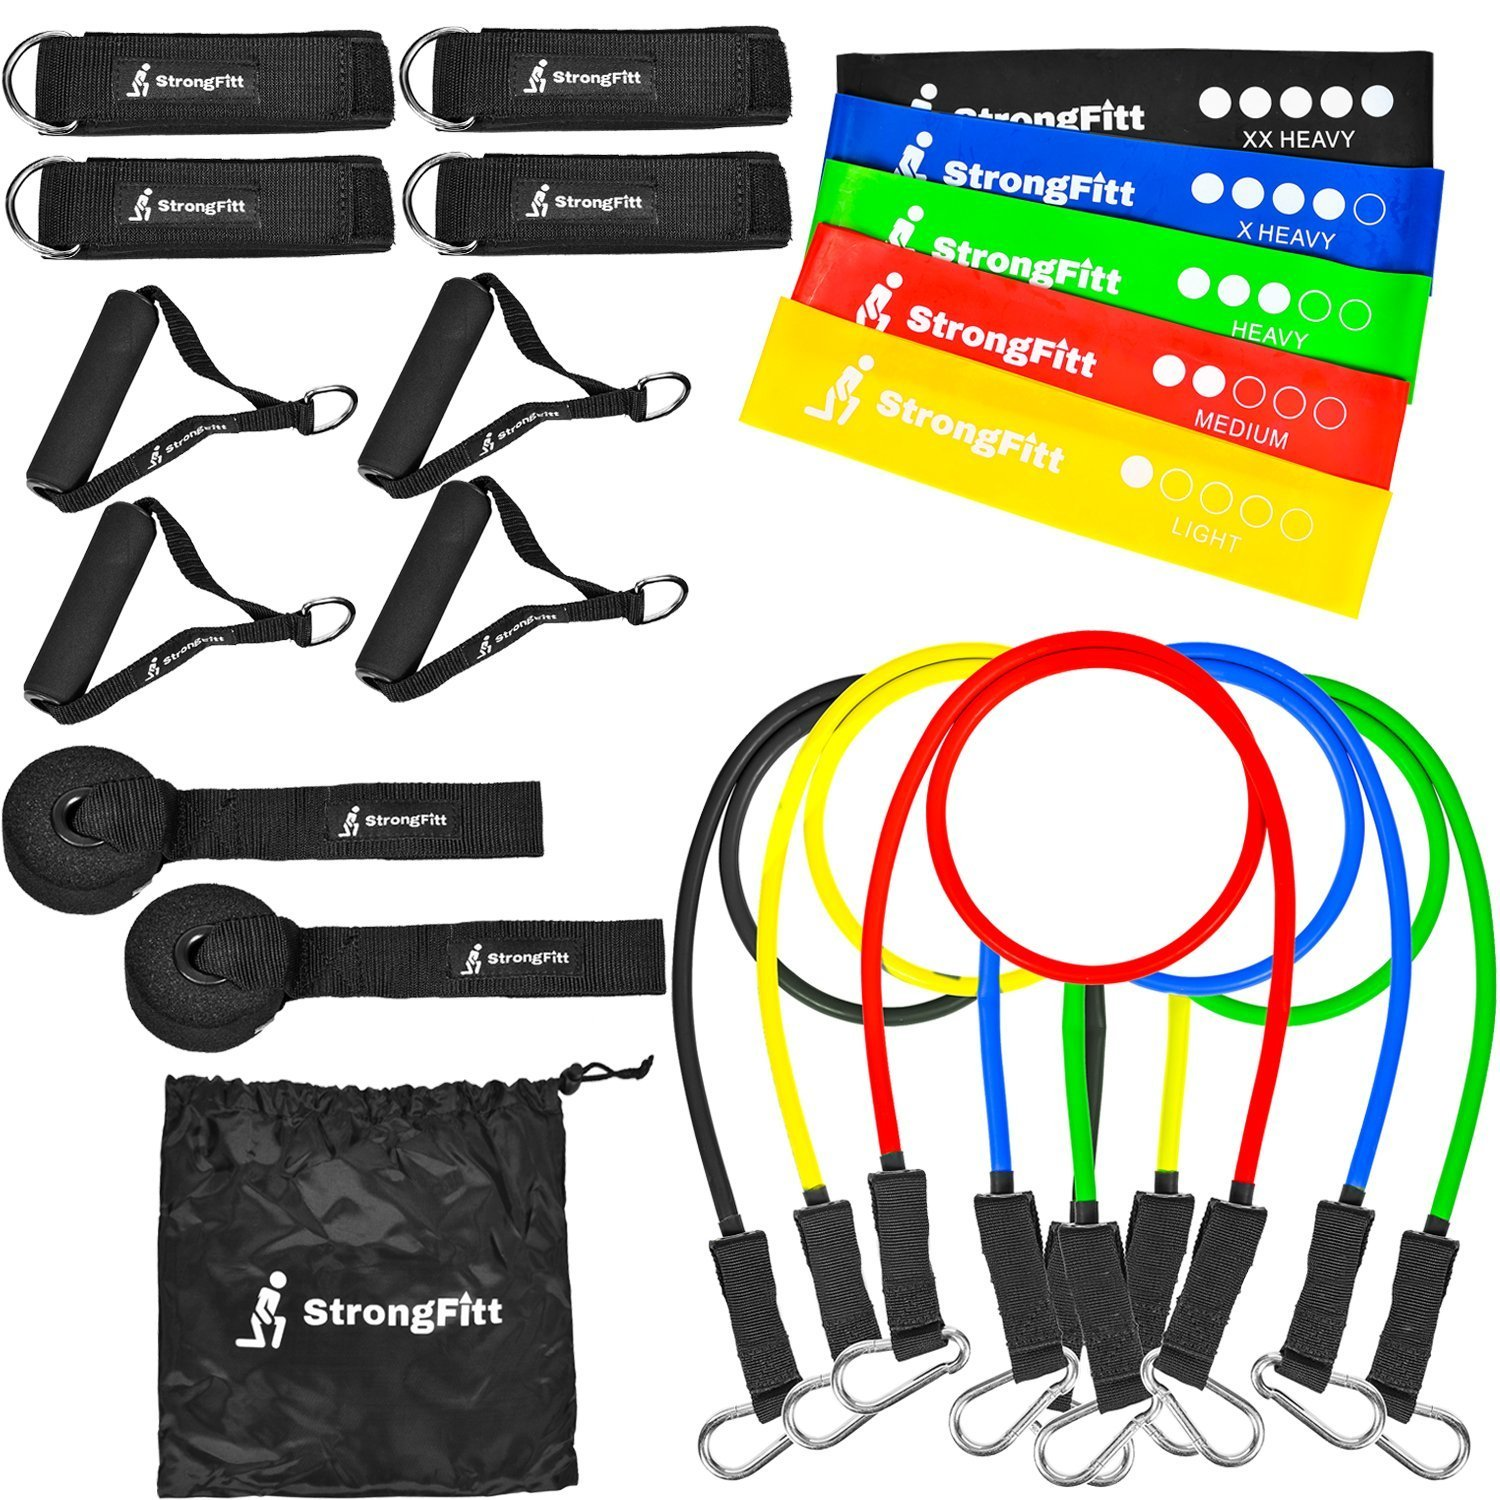 SrongFitt - Multi Family Pack - Enjoy Doing Exercise With A Buddy - Physical Therapy - Home Fitness - 21 Pieces - 5 Loop Bands, 5 Resistance Bands, 2-Pair Handles, 2-Pair Ankle Straps, 2-Door Anchor